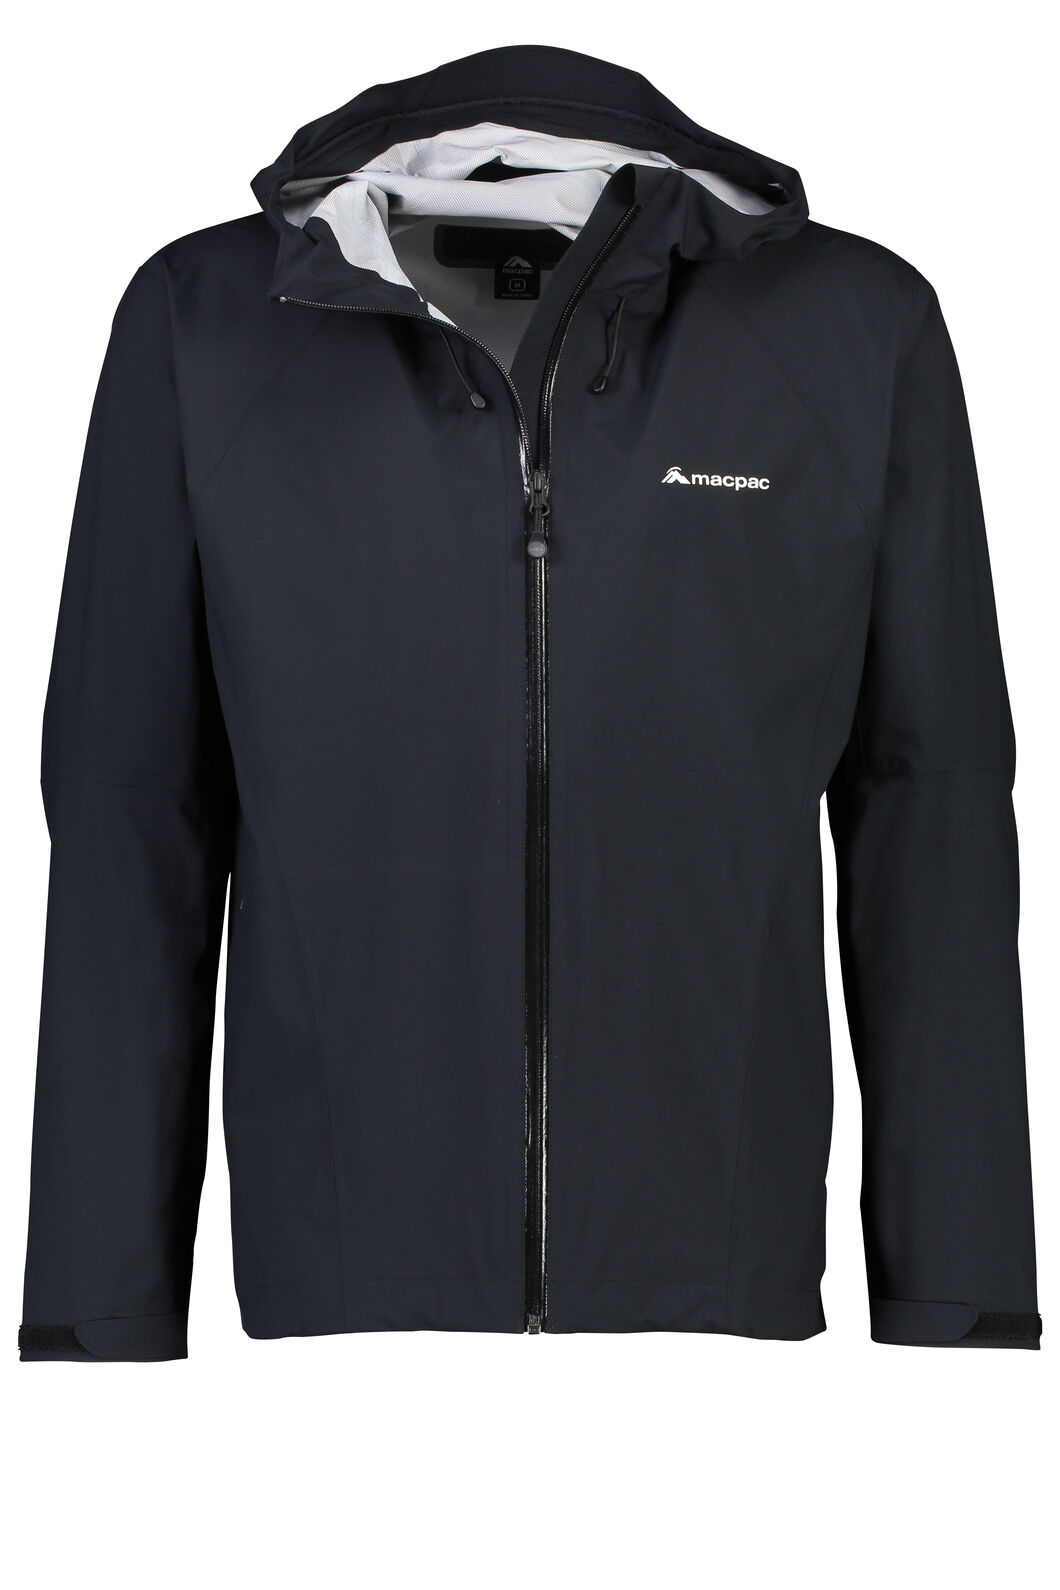 Macpac Less is less Rain Jacket - Men's, Black, hi-res